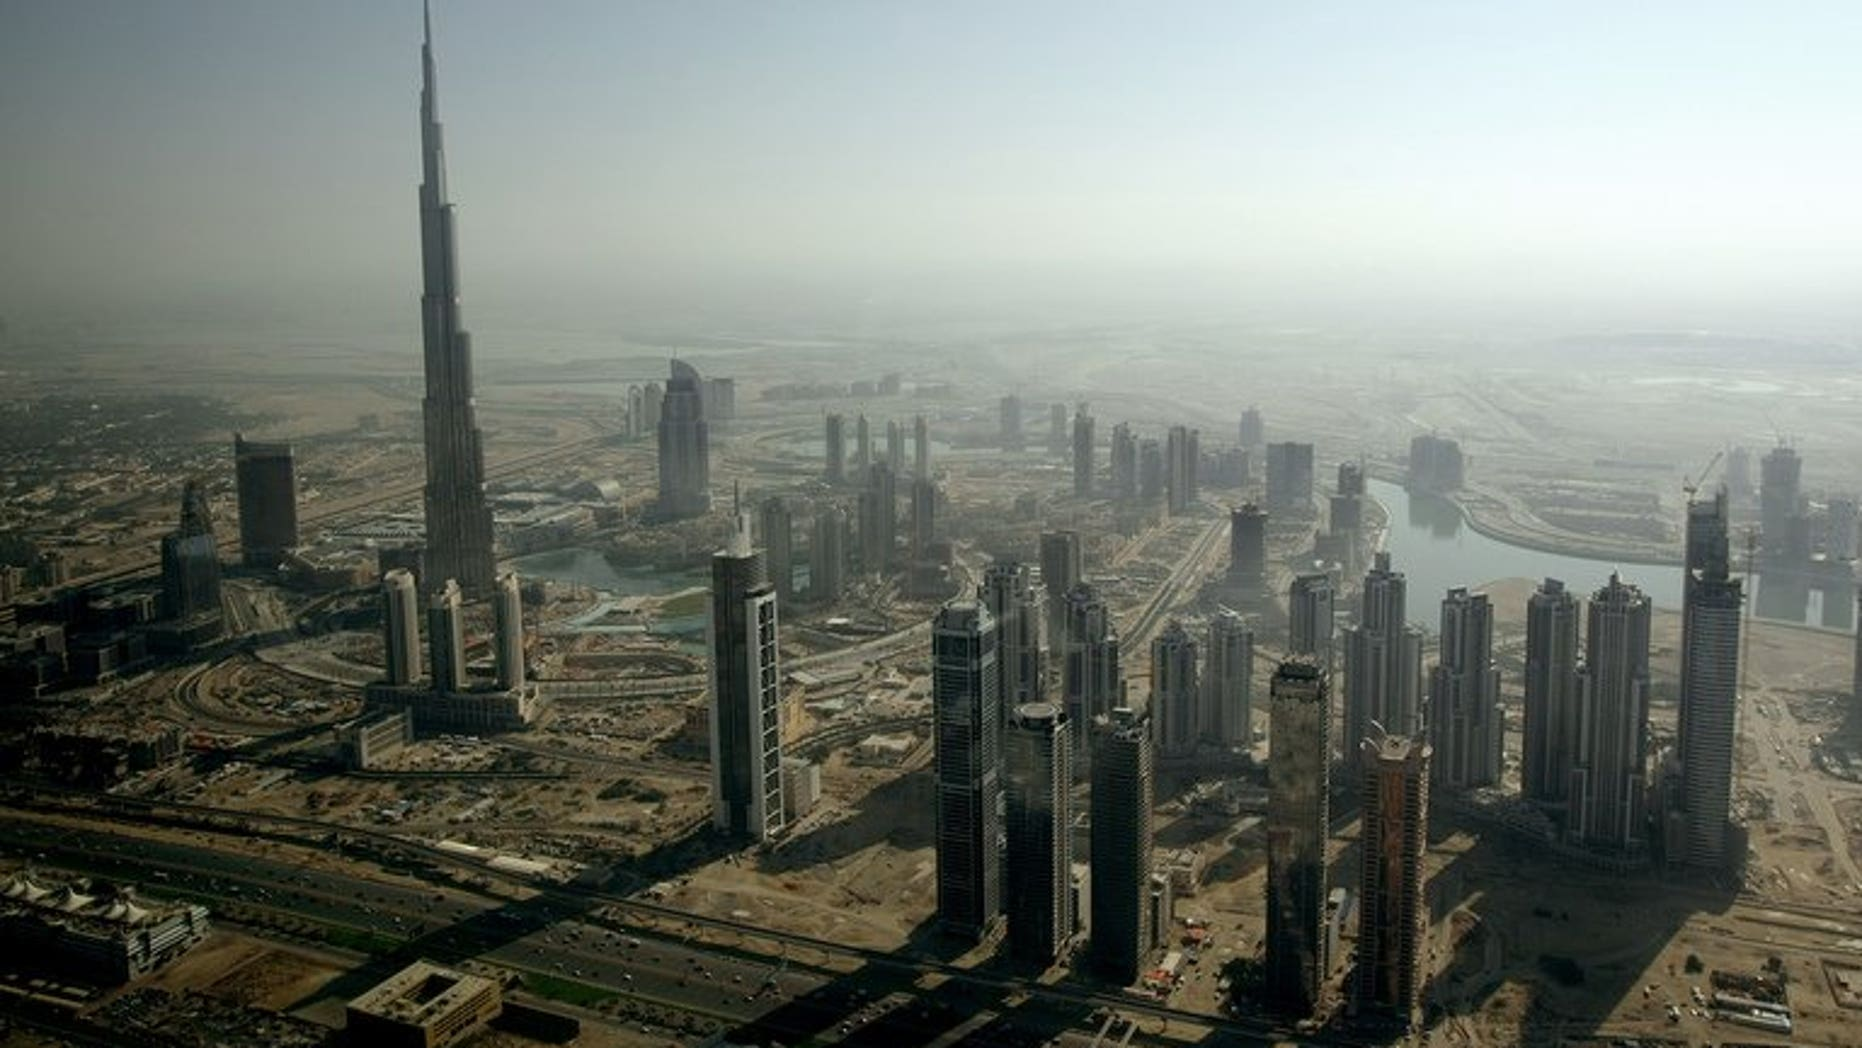 An aerial view shows the Burj Khalifa rising among skyscrapers in Dubai on December 17, 2009. Dubai-based real estate giant Emaar Properties said Monday its net profit increased 10 percent to $184 million in the second quarter of 2013, as sales nearly quadrupled.